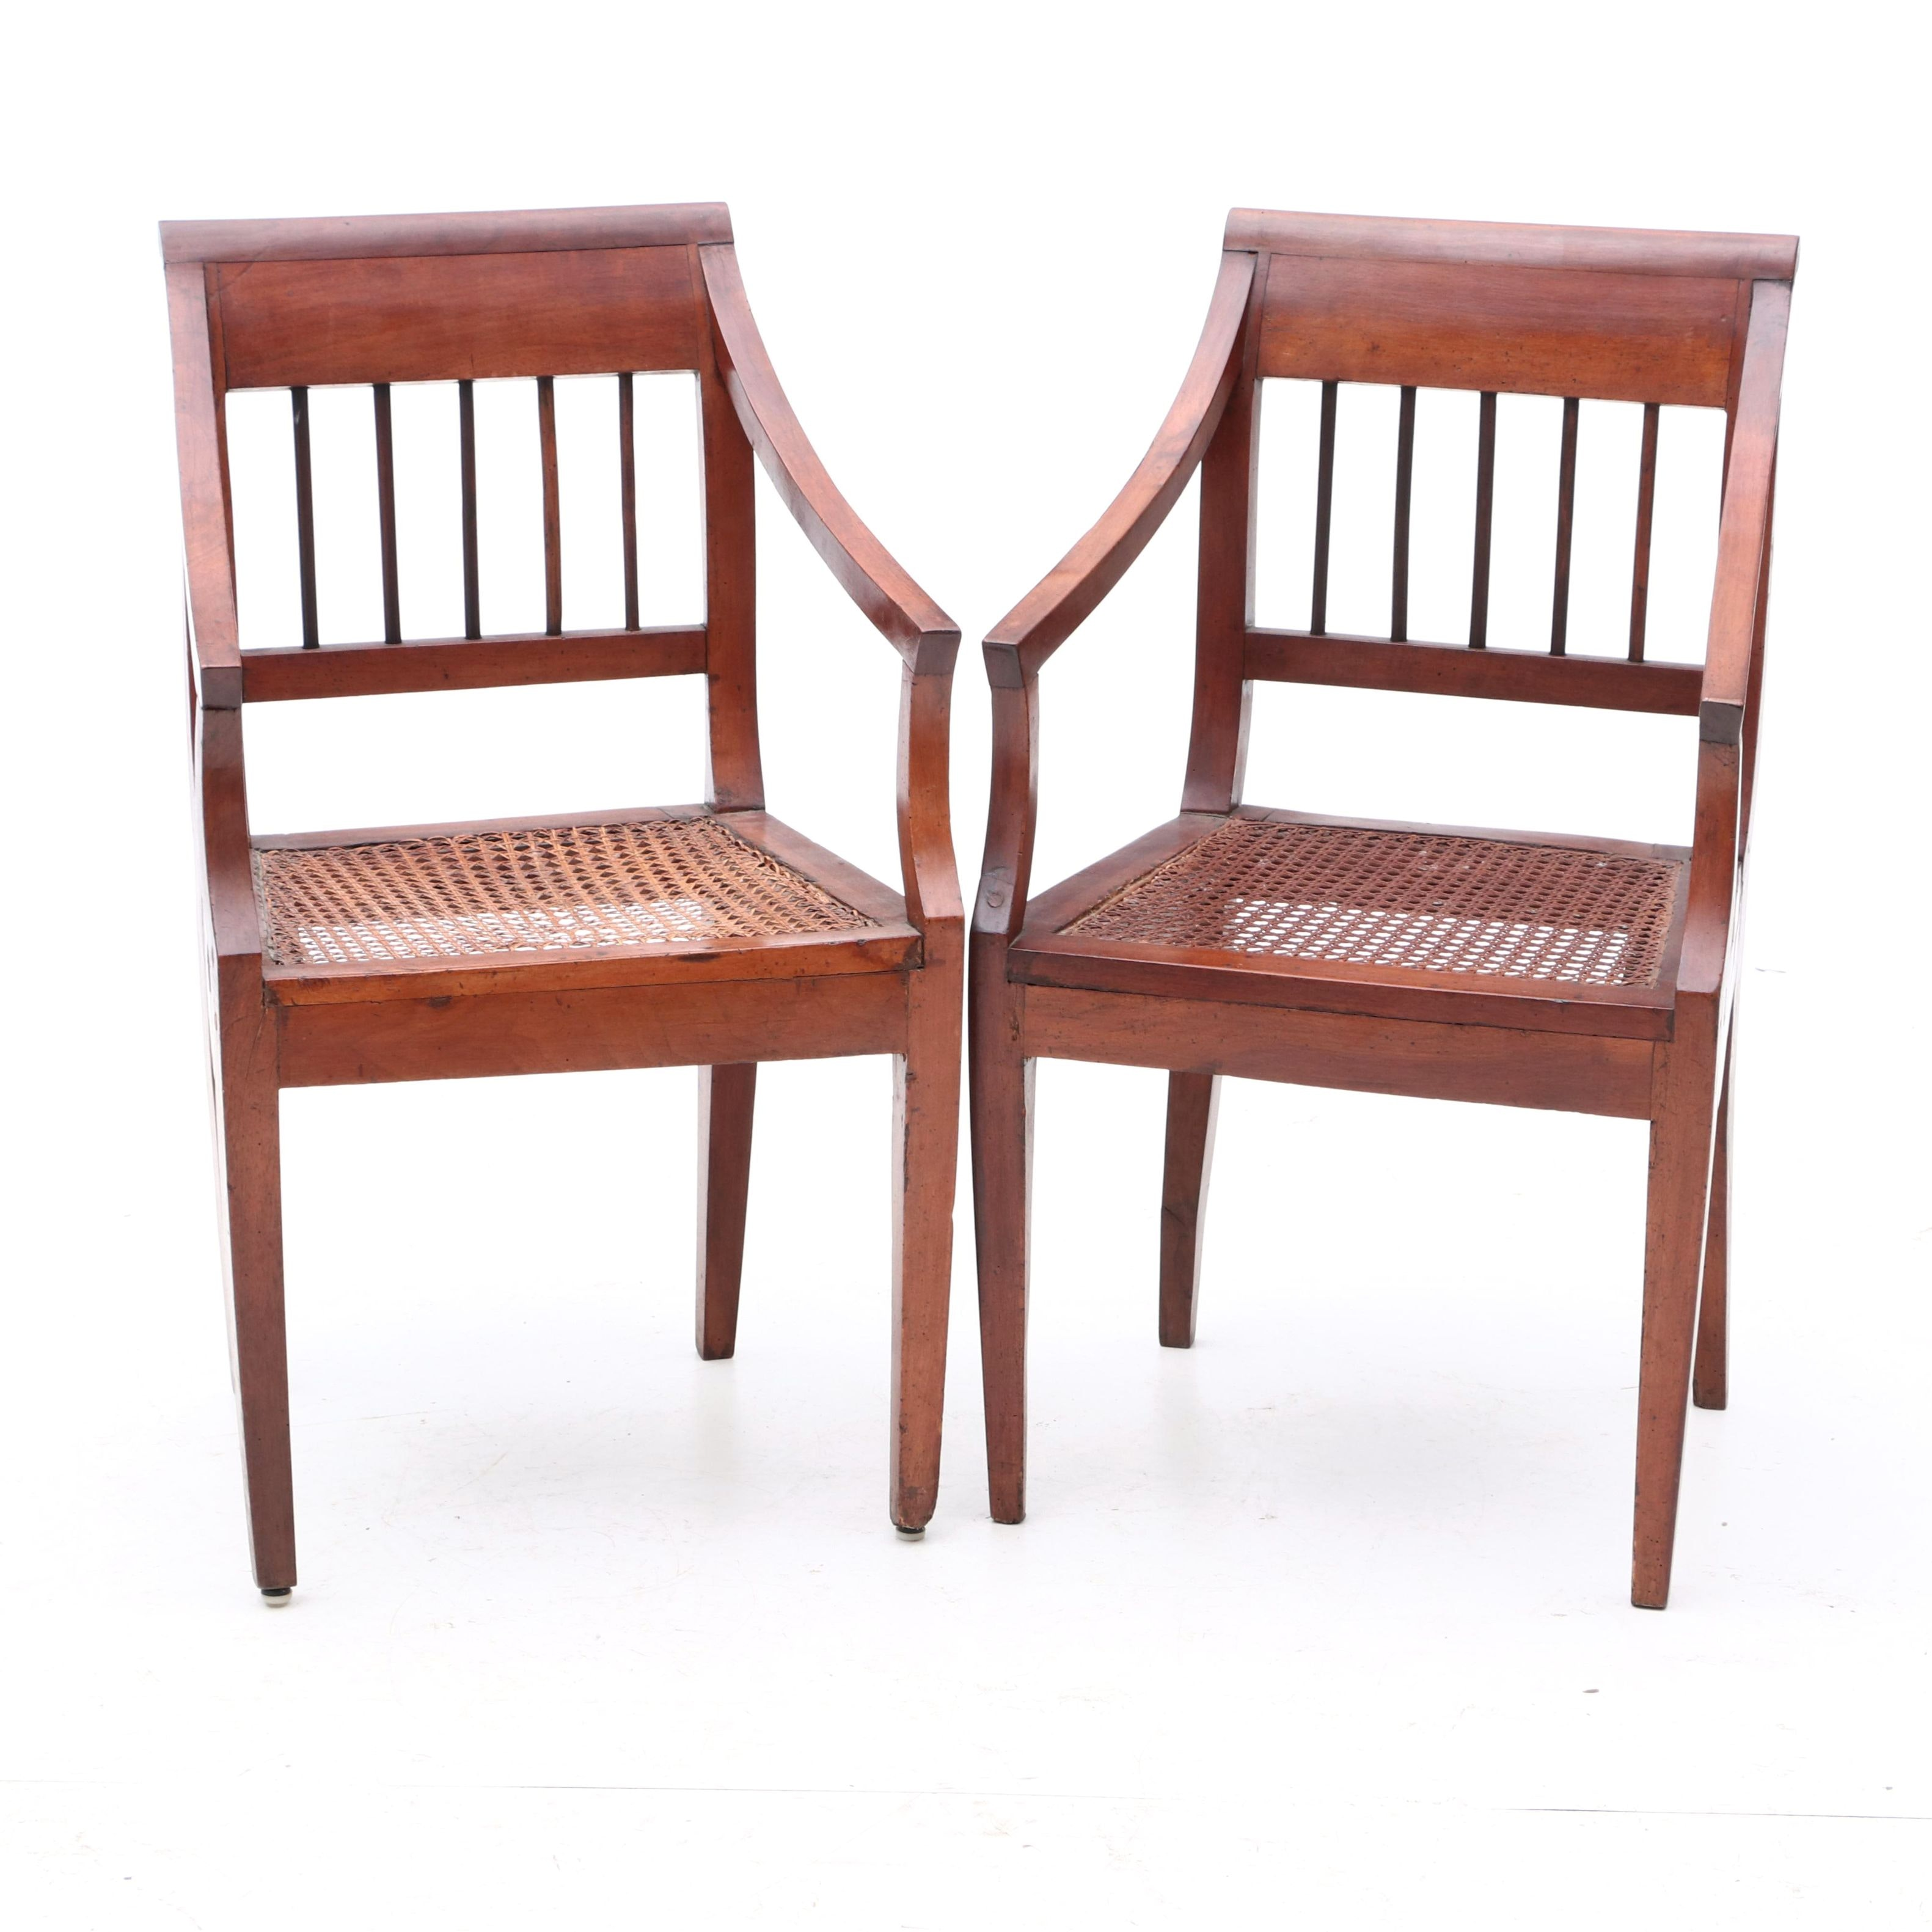 Pair of Early 19th Century Armchairs